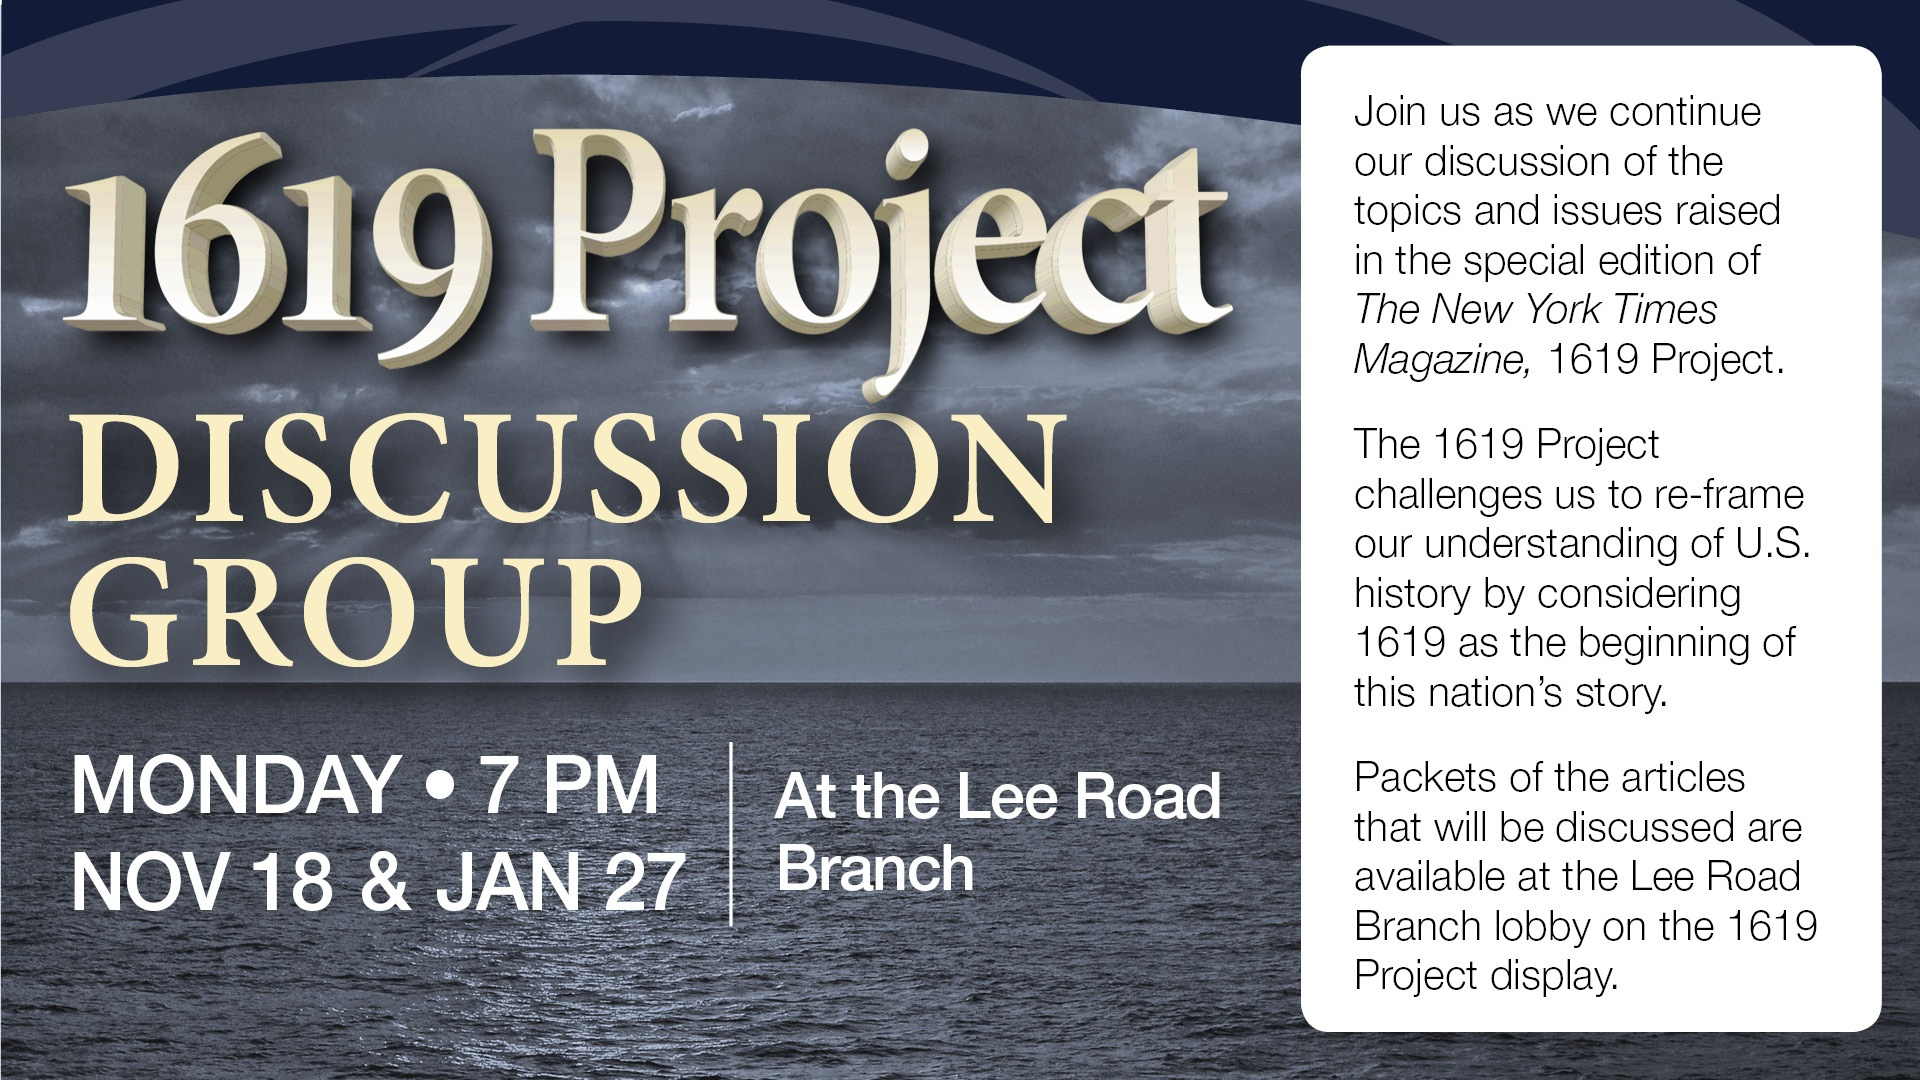 1619 Project Discussion Group NOV 18 and JAN 27_SLIDE (1)